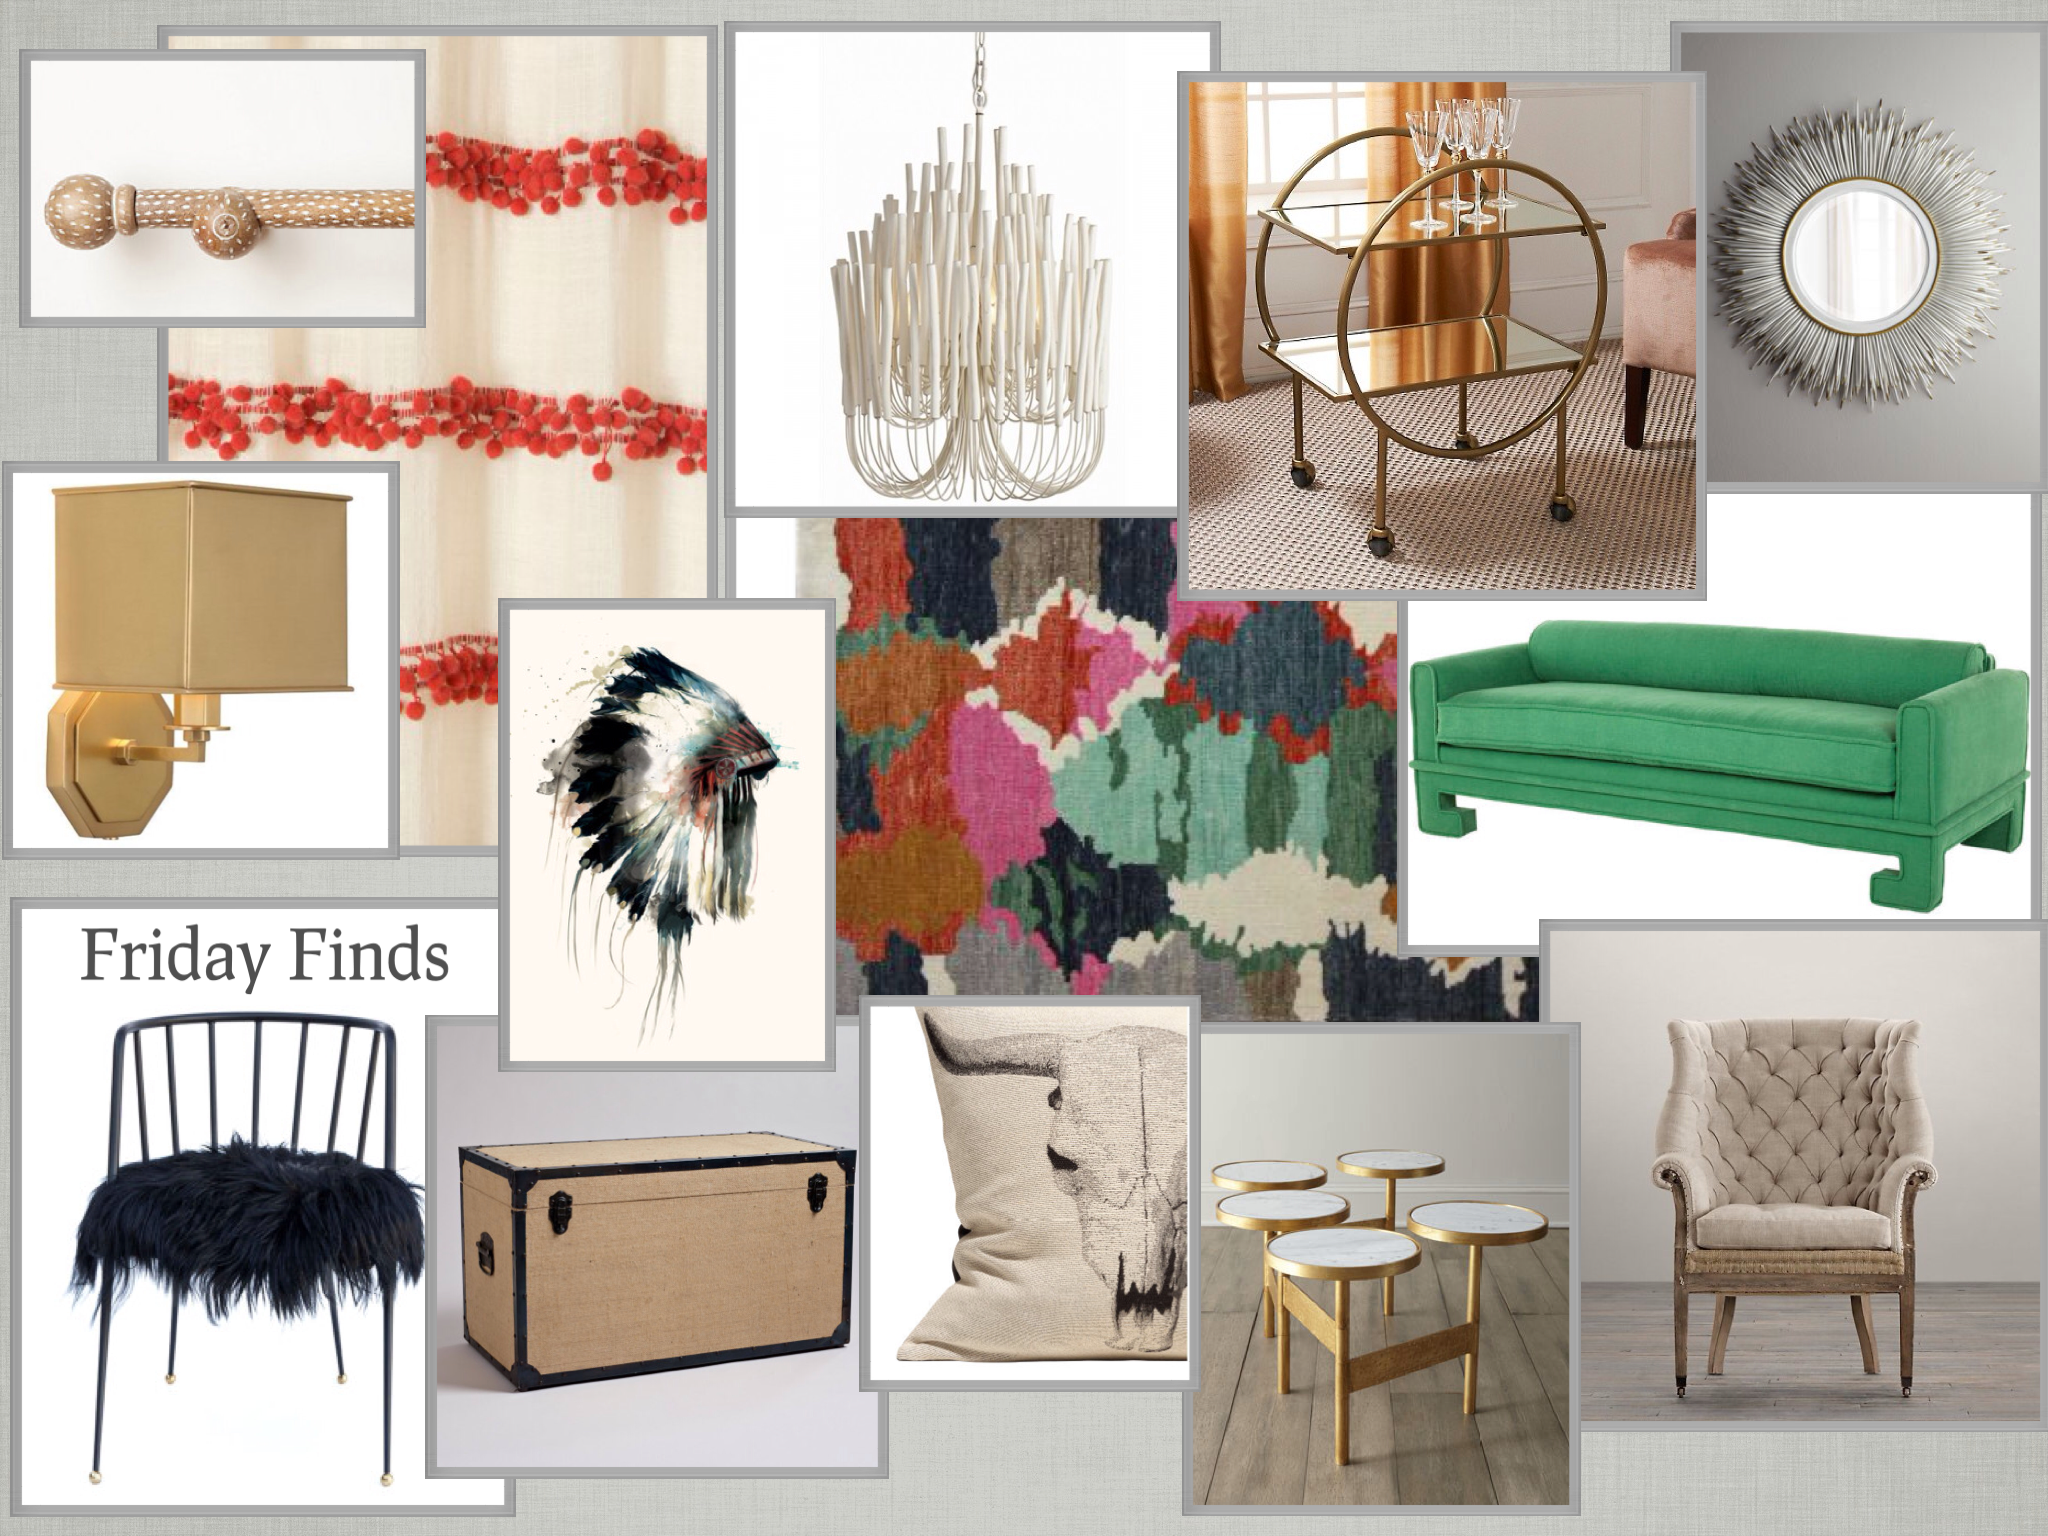 Clockwise from left to right:    Anthropologie Speckled Wood Curtain Rod  |  Red and White Striped Pom Pom Curtain  |  Tilly White Chandelier  |  Colin Cowie Gold Brass Bar Cart  |  White Porcupine Needle Sunburst Mirror  |  Kelly Emerald Green Sofa  |  Deconstructed English Wing Chair  |  Brass Gold Marble Circles Coffee Table  |  Vortex Amba Rug  |  Cow Pillow  |  Headdress Stretched Canvas  |  Burlap Steamer Trunk  |  Kelly Wearstler Malibu Chair  |  Mary McDonald Pythagoras Gold Wall Sconce